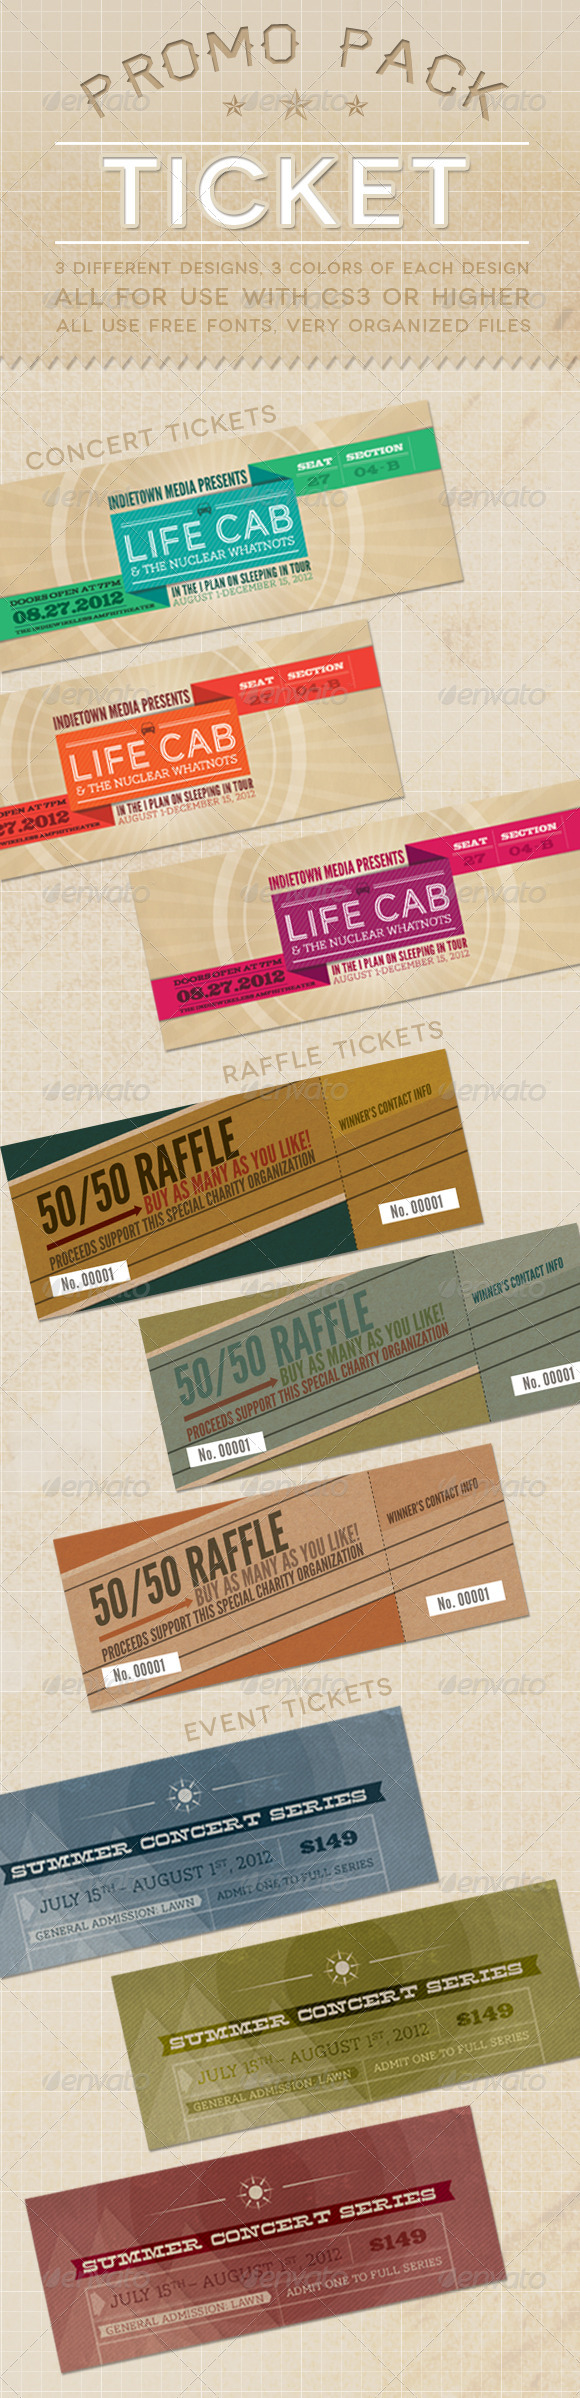 Ticket Promo Pack - Miscellaneous Print Templates